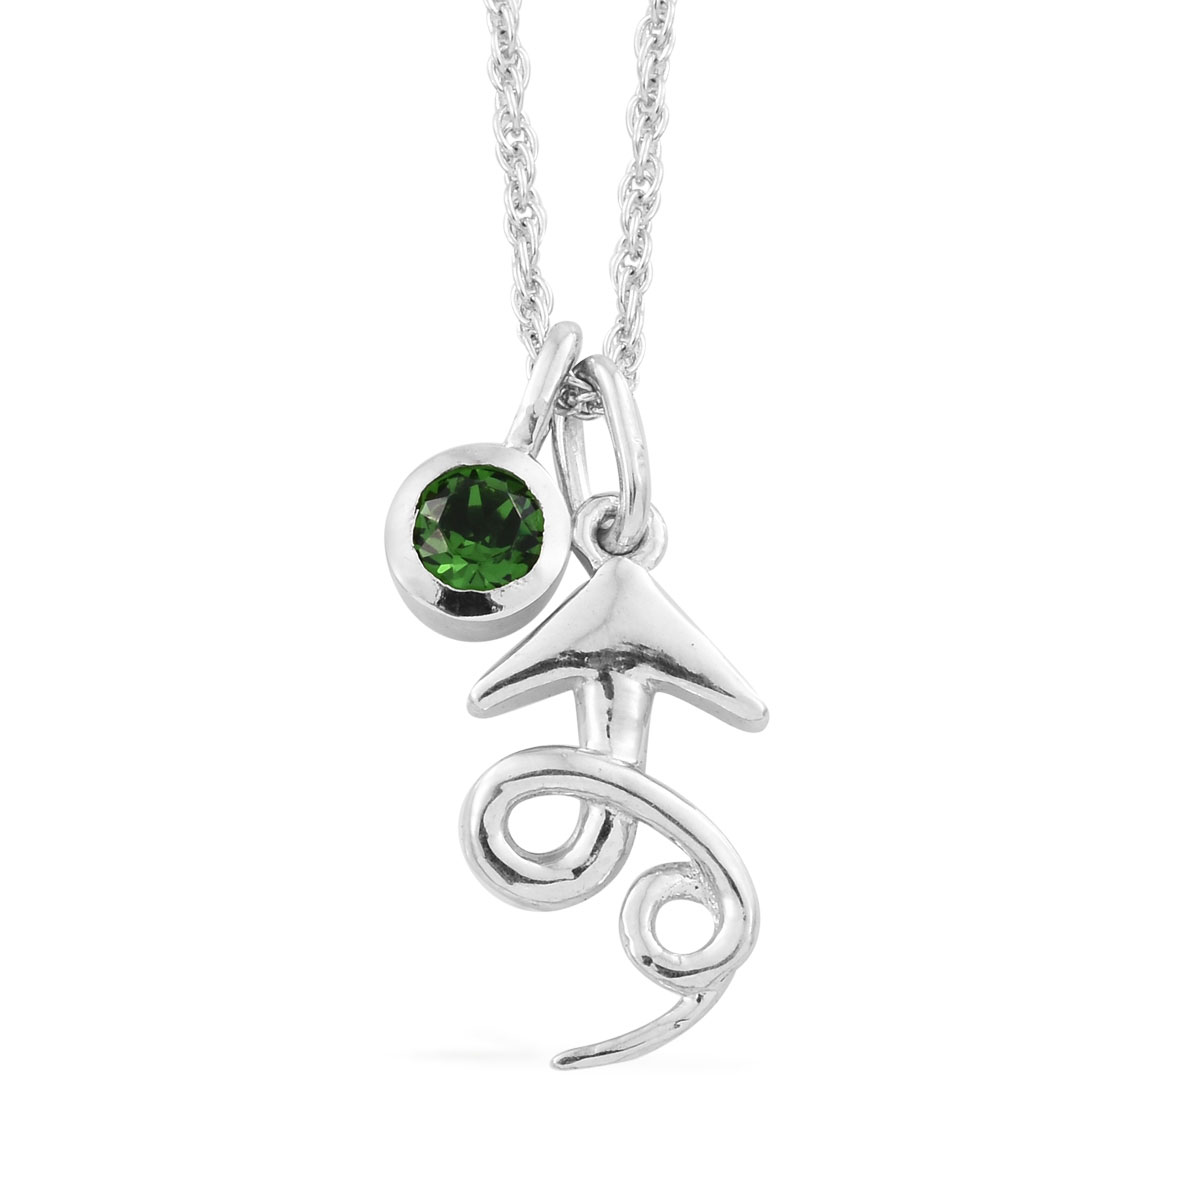 KASI Collection - Always Rise Platinum Over Sterling Silver Pendant and Charm with Chain (16 in) Made with SWAROVSKI Crystal TGW 0.25 cts.